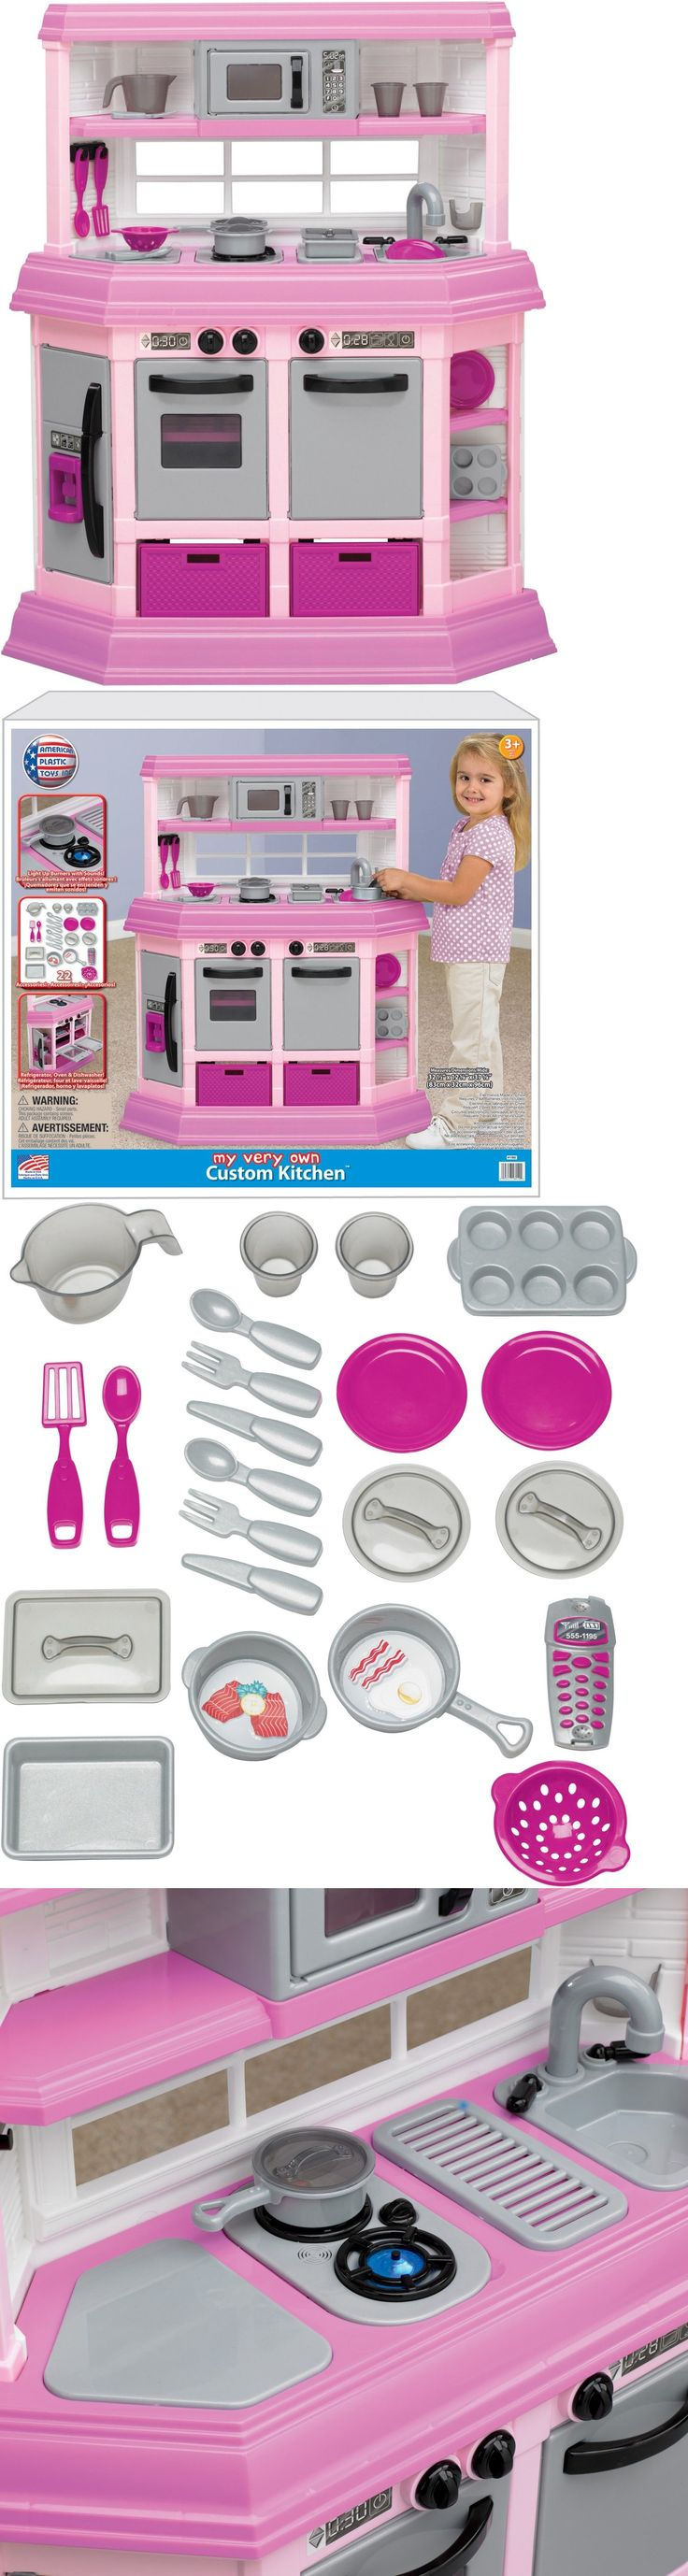 Kitchens 158746: Kitchen Playset Kids Pretend Play Cooking 22 Piece Girls Pink Toy Toddler Game -> BUY IT NOW ONLY: $76.94 on eBay!